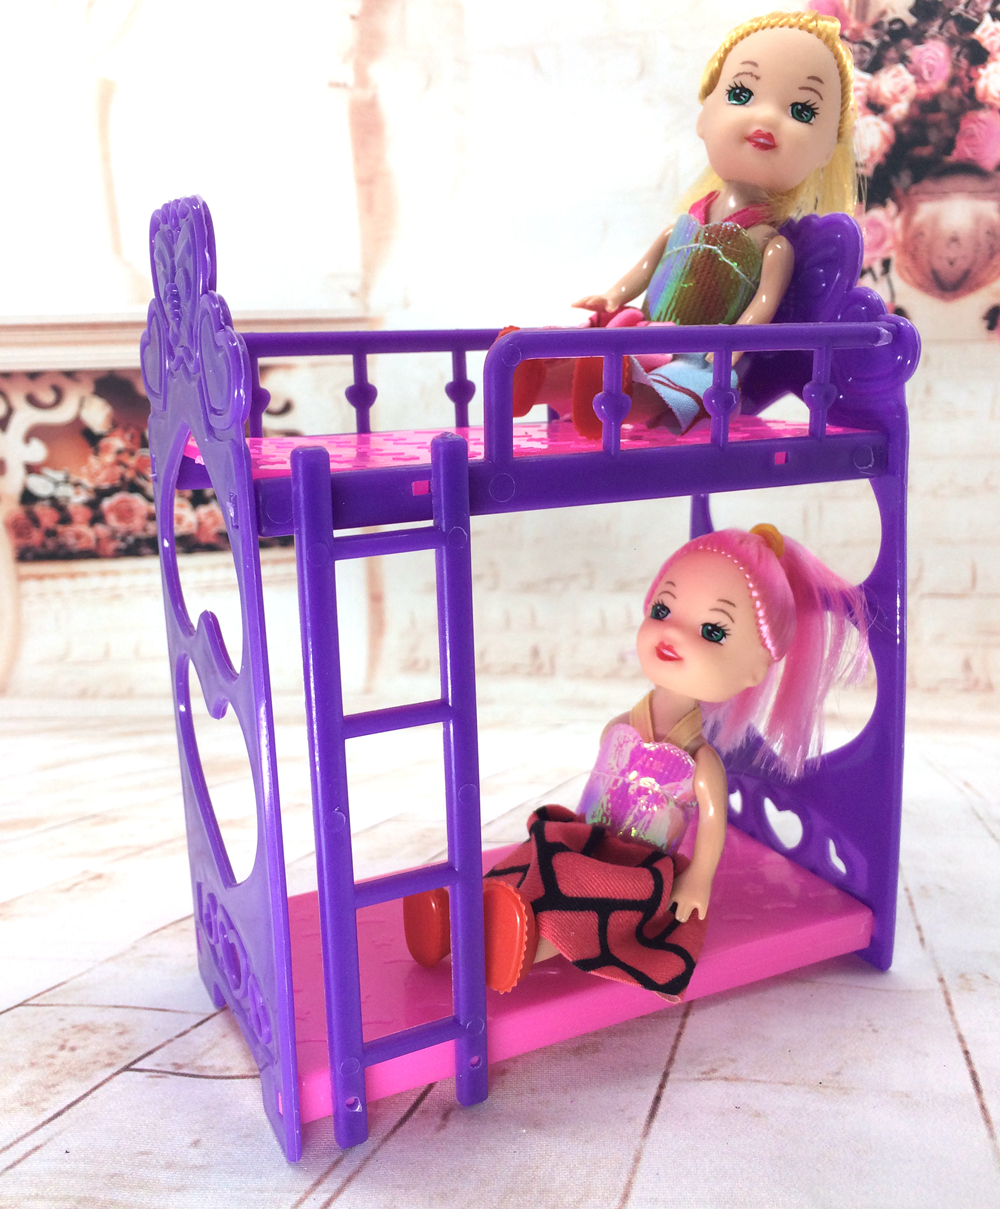 NK One Set Doll Accessories Super CutePlatic Bunk Bed Play House Toys For Mini doll house For Barbie Doll Kelly Doll(China (Mainland))